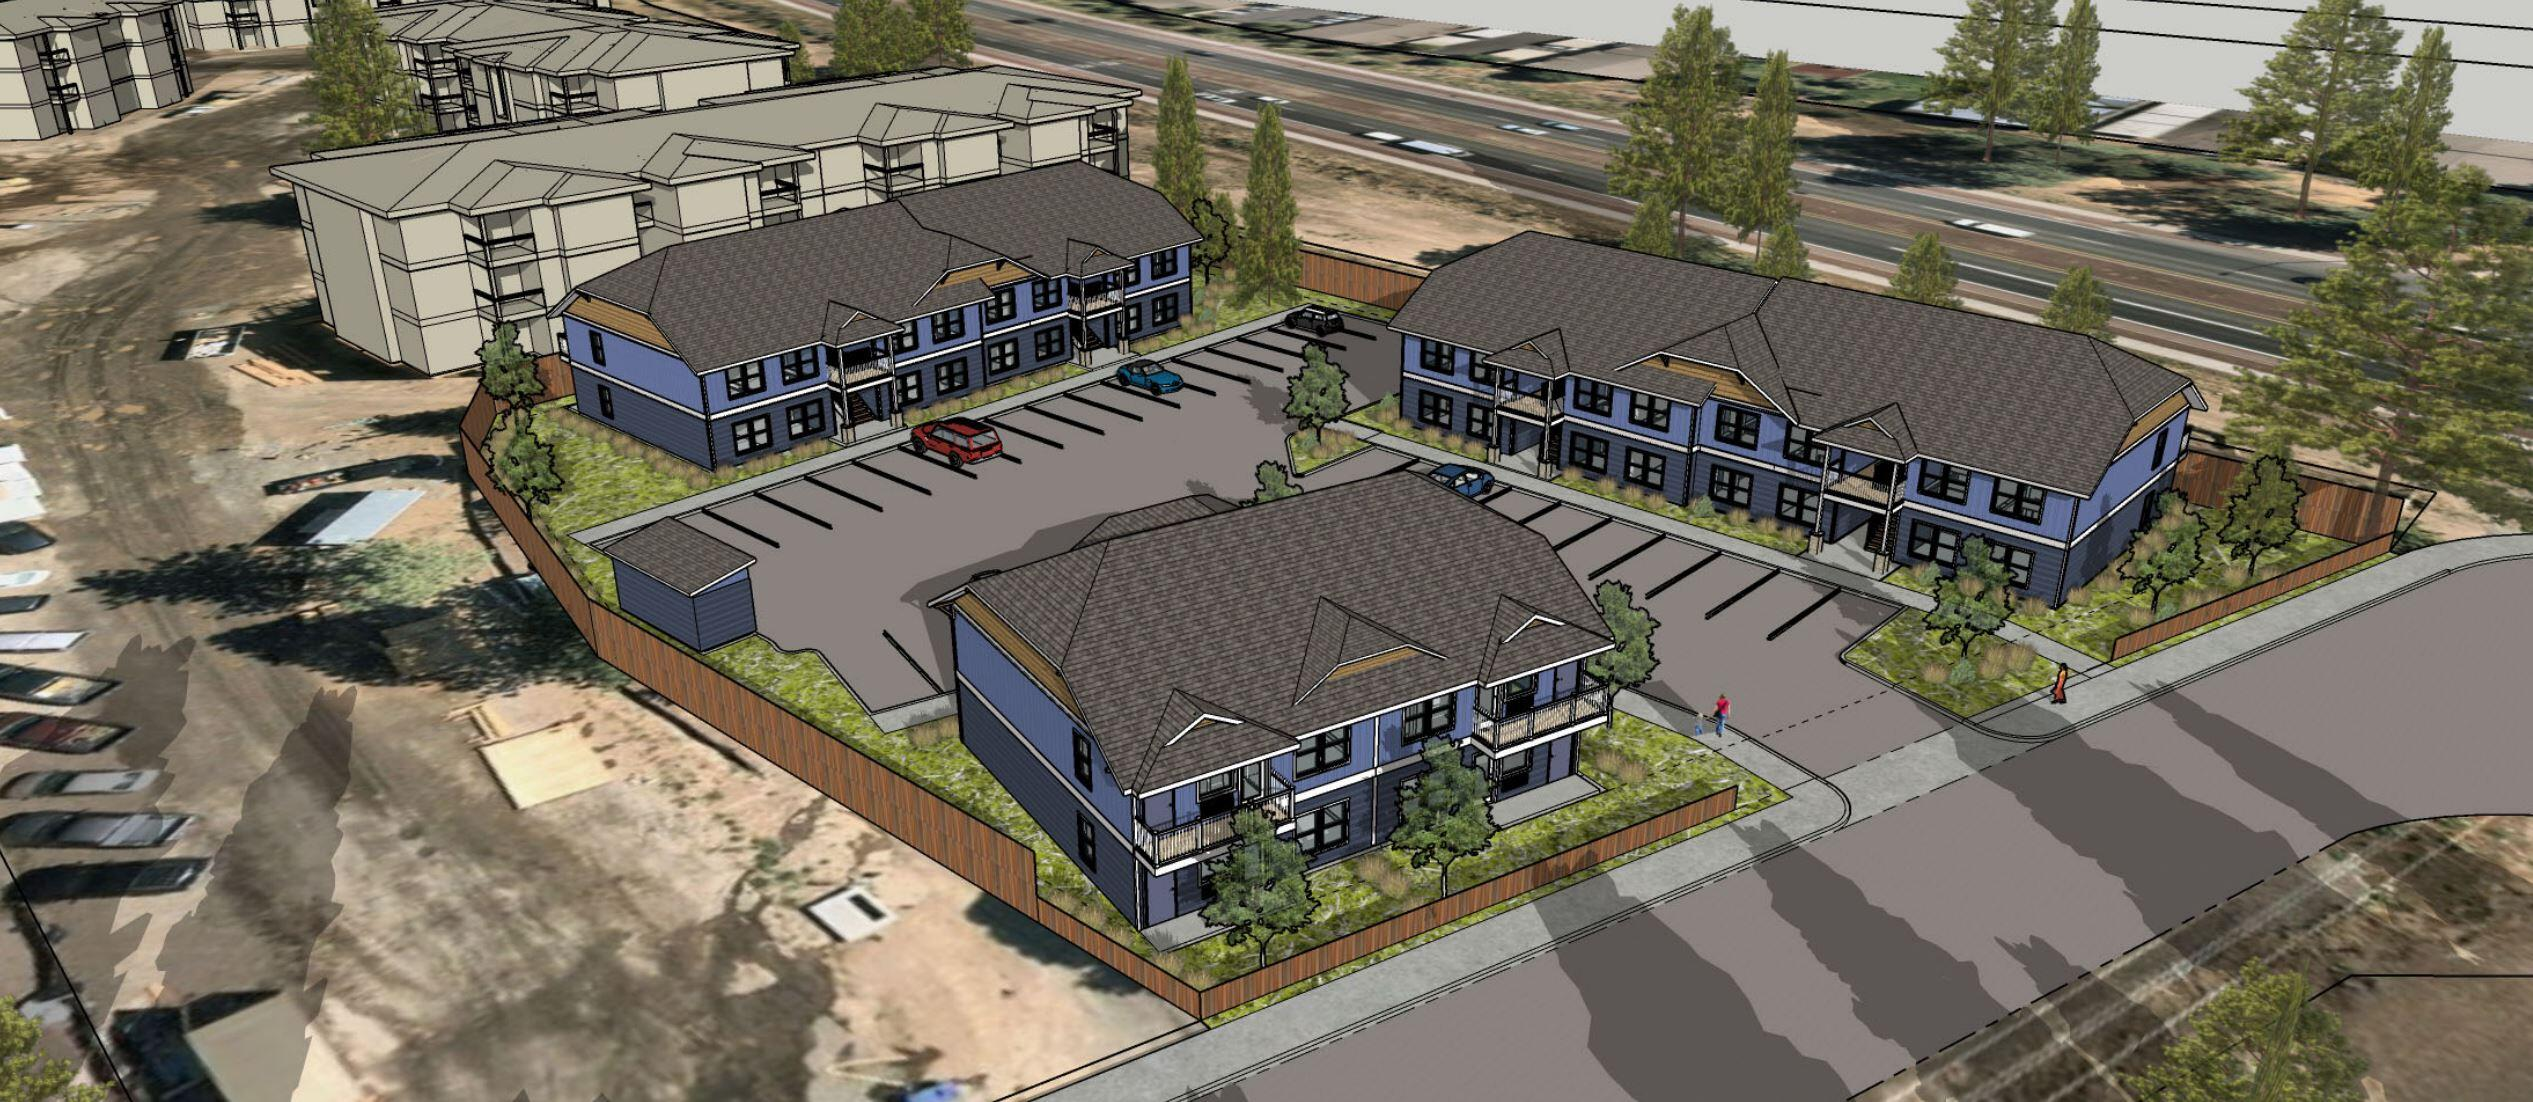 New 20 Unit Apartment Complex located in SW Bend. Estimated completion of December 2022. This property will be completed and fully leased prior to closing. All 2 beds and 2 bath units. Central location with easy access to shopping and services.